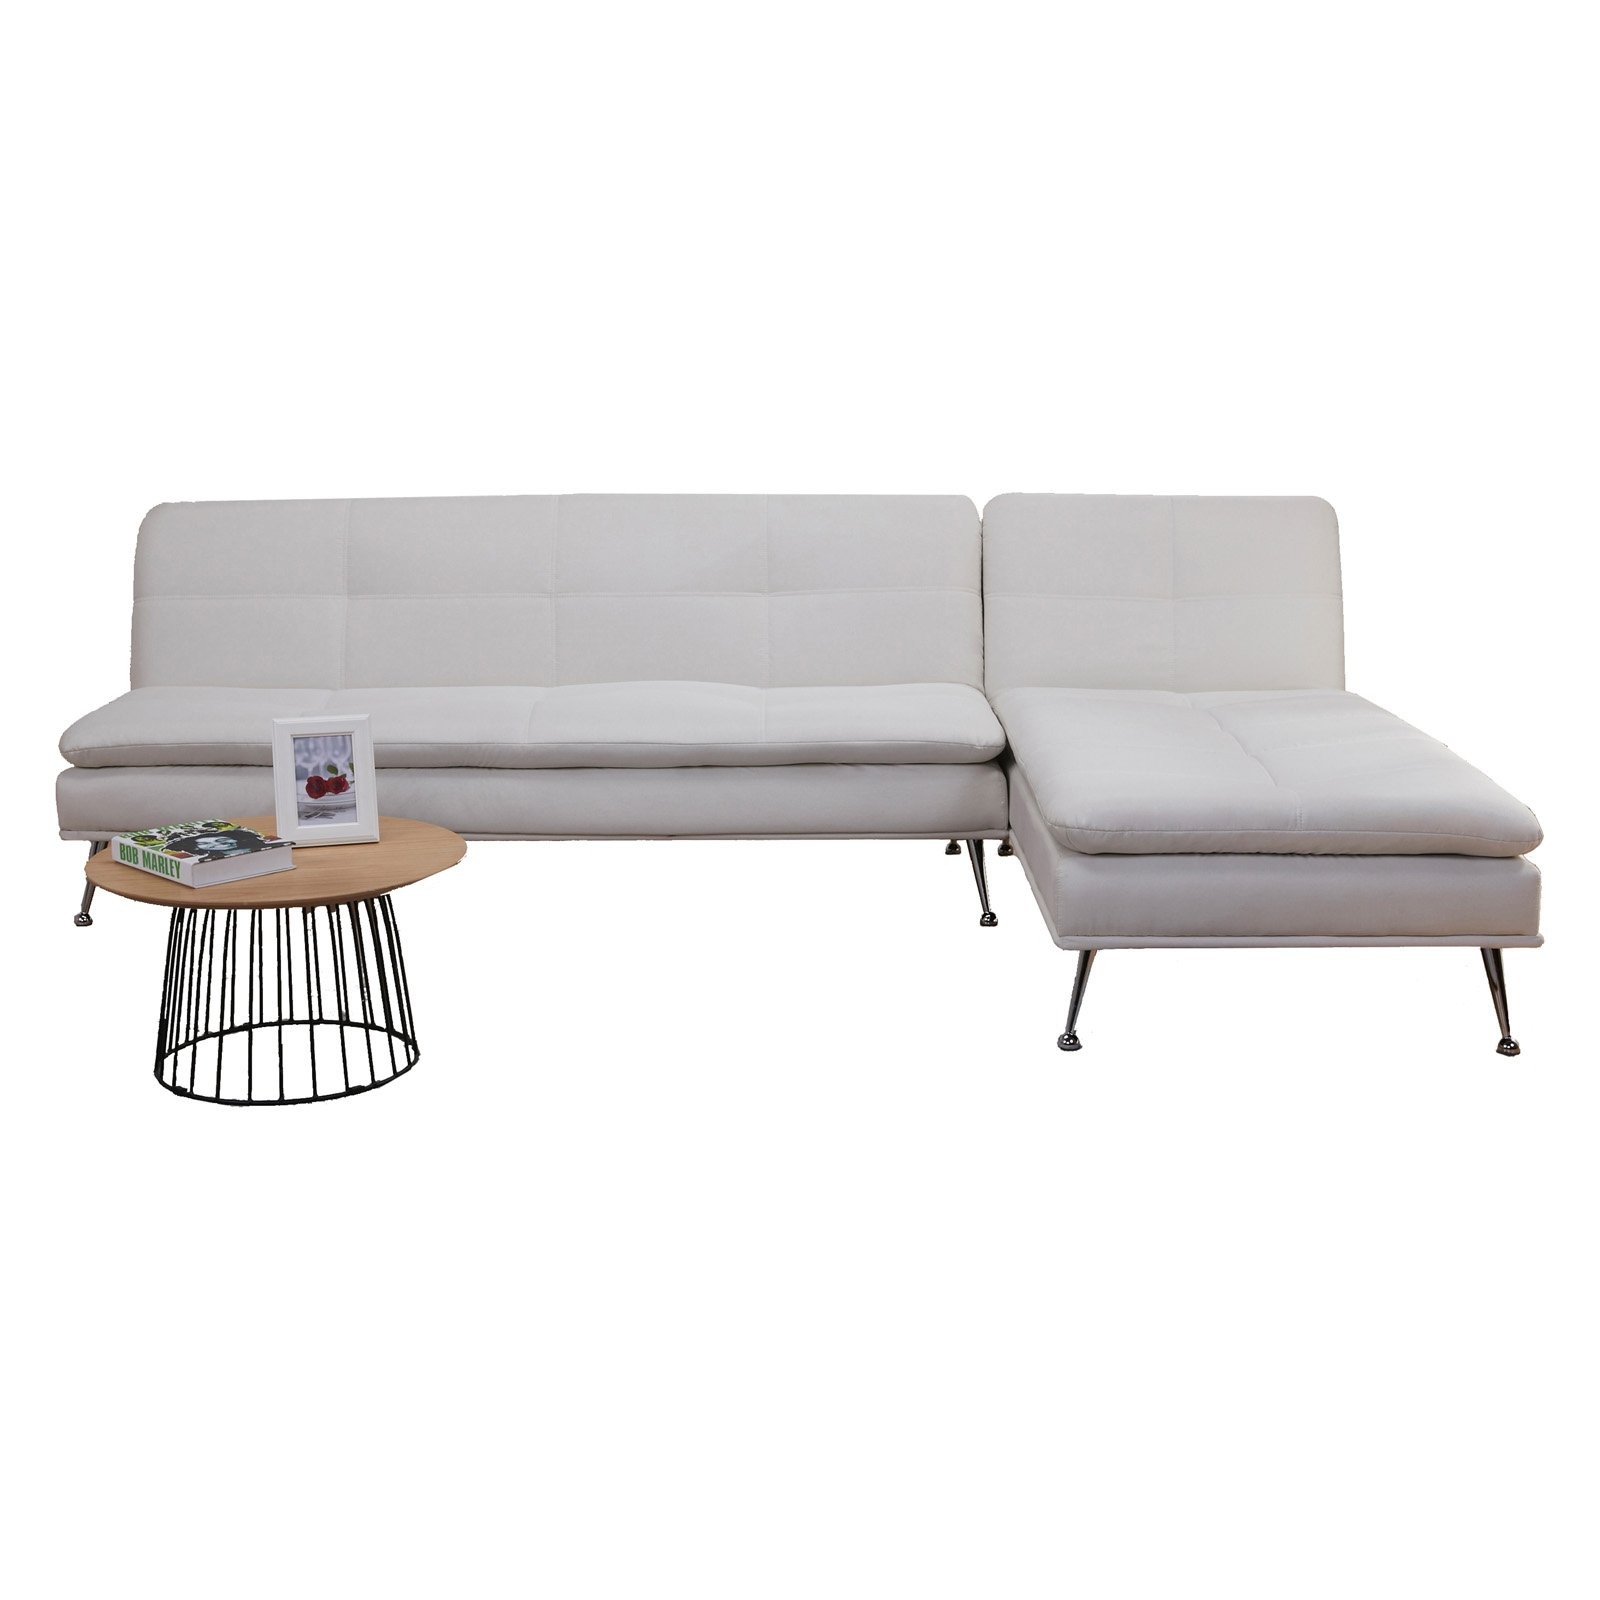 Gold Sparrow Palmdale Convertible Sectional Sofa Bed - Walmart.com